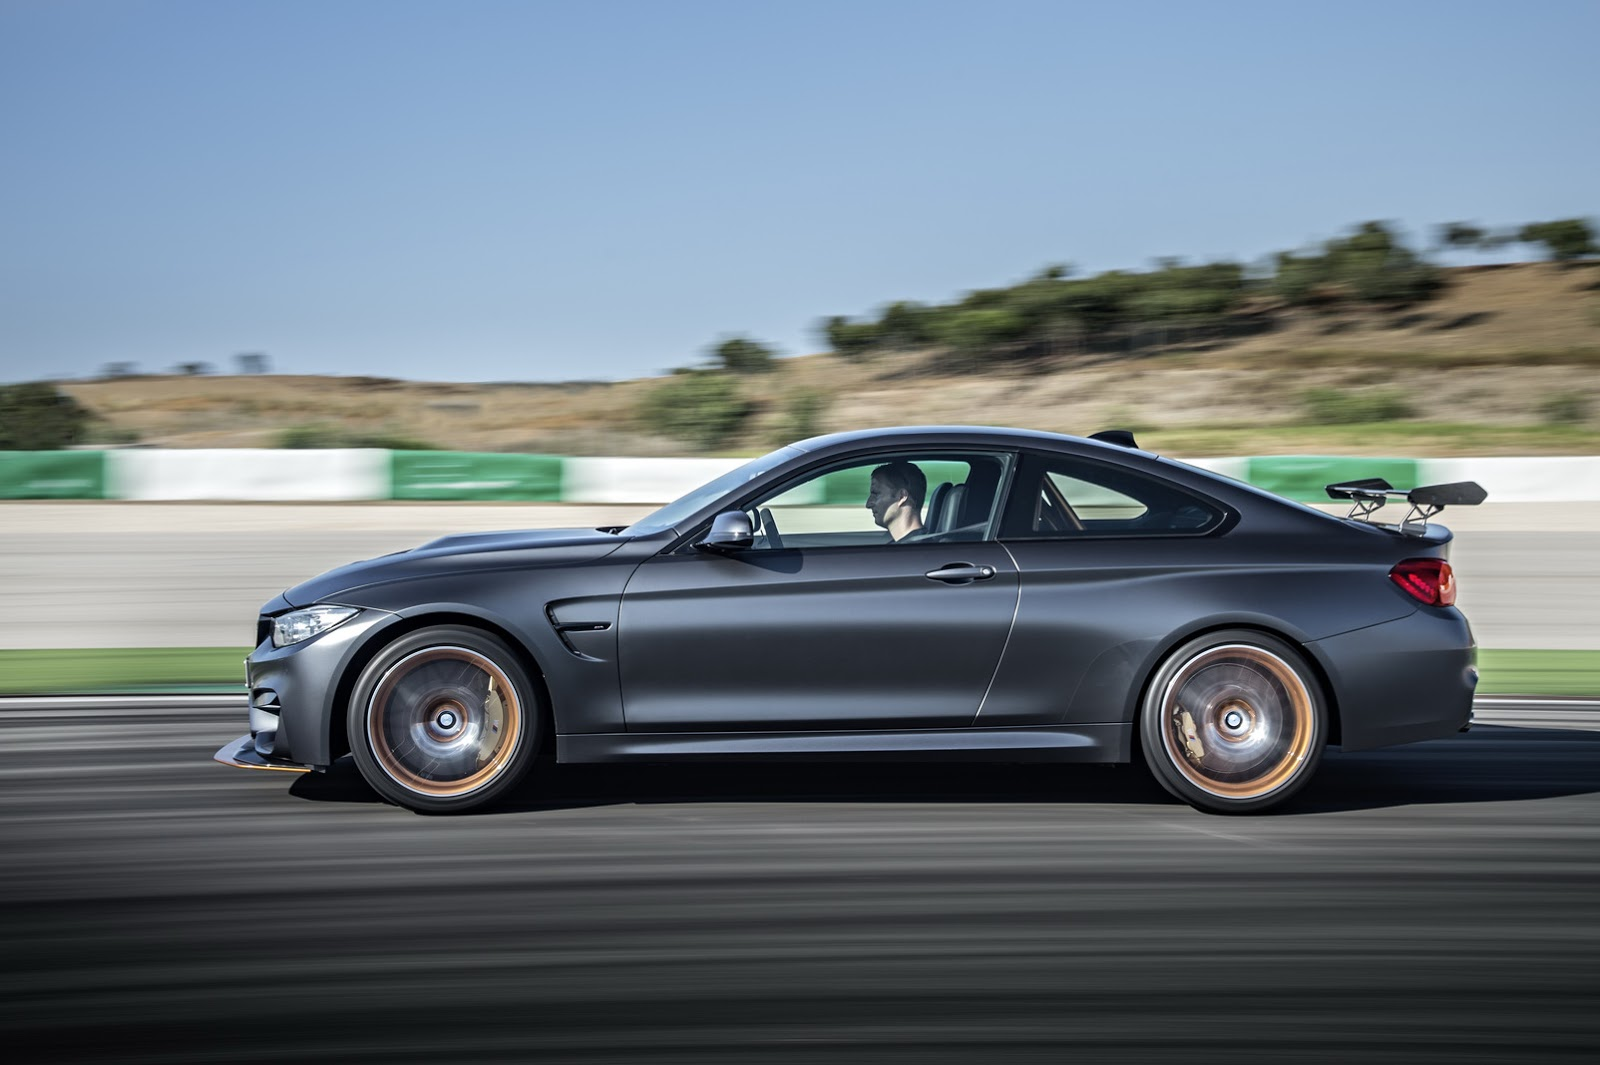 bmw m4 gts production ends with 803 customer cars built. Black Bedroom Furniture Sets. Home Design Ideas